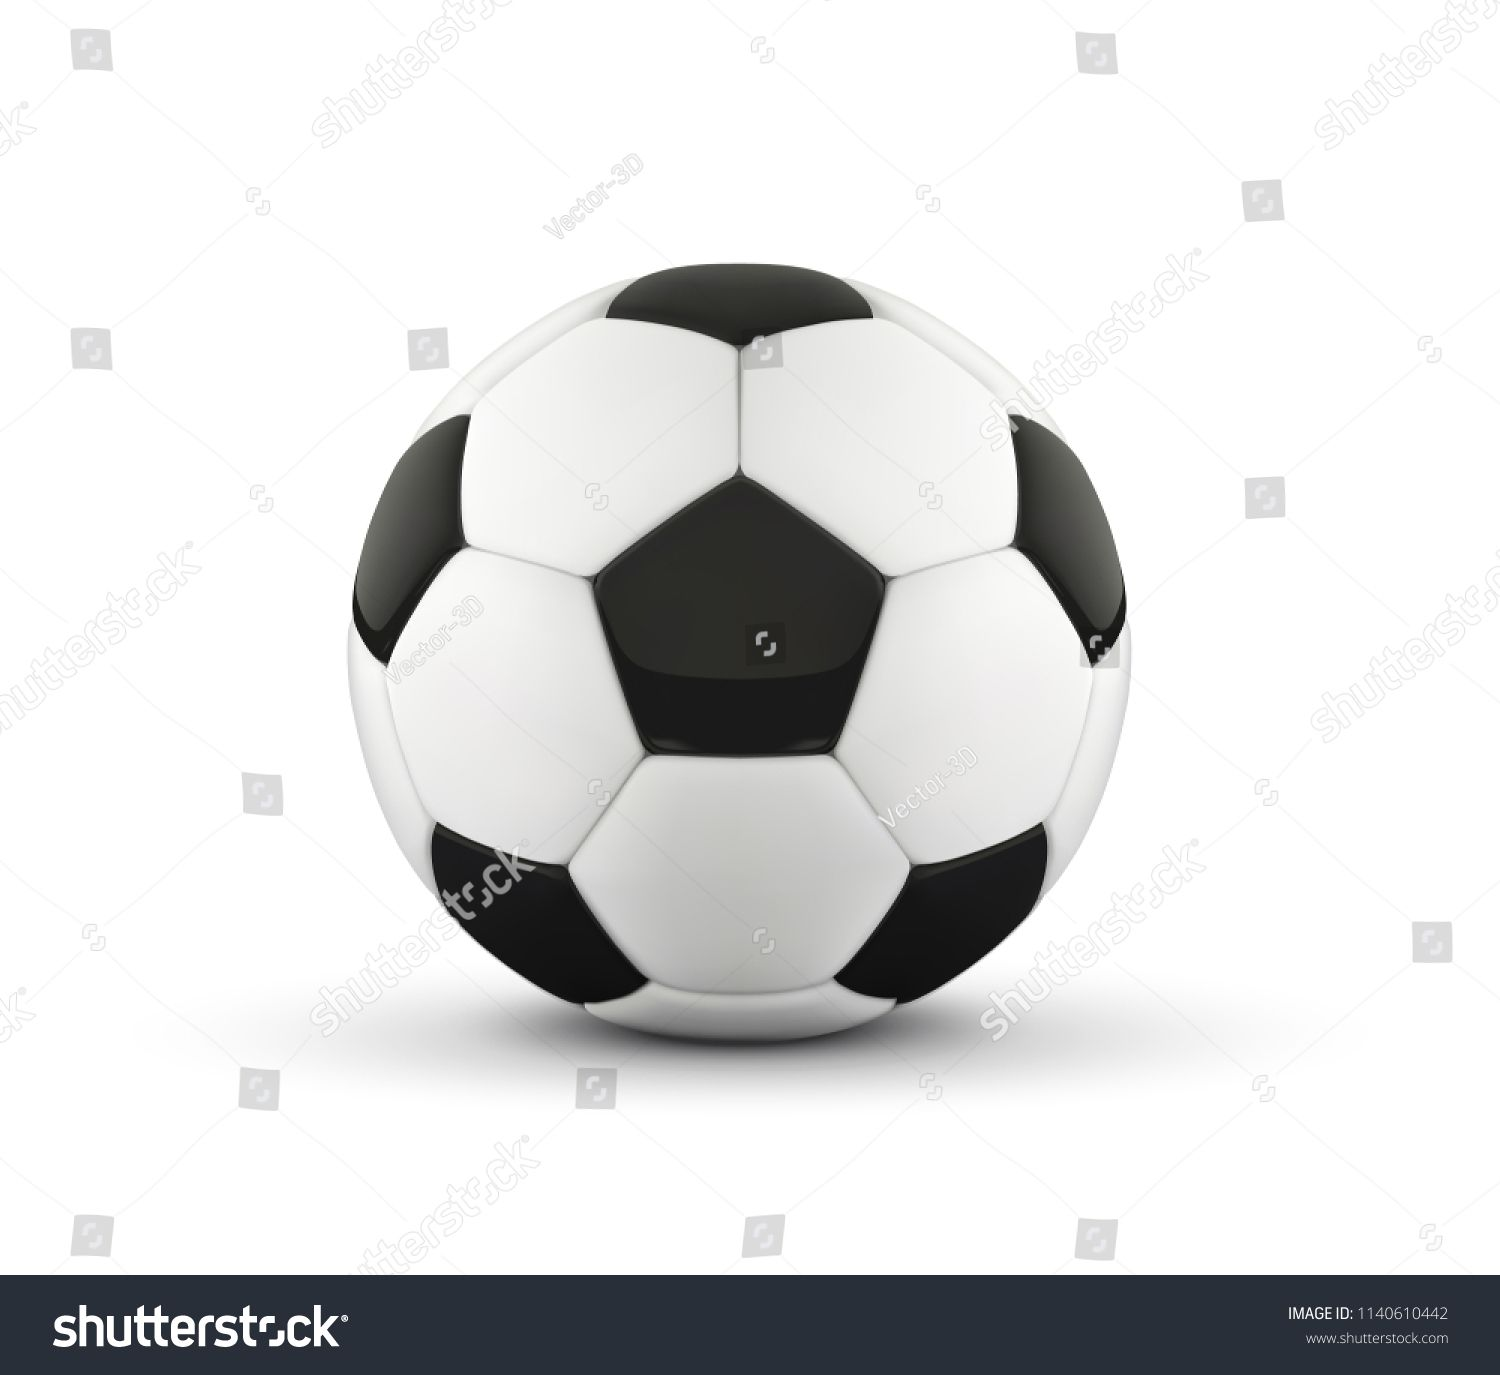 Girl Soccer Player Kicking The Ball Soccer Drawing Soccer Images Girls Soccer